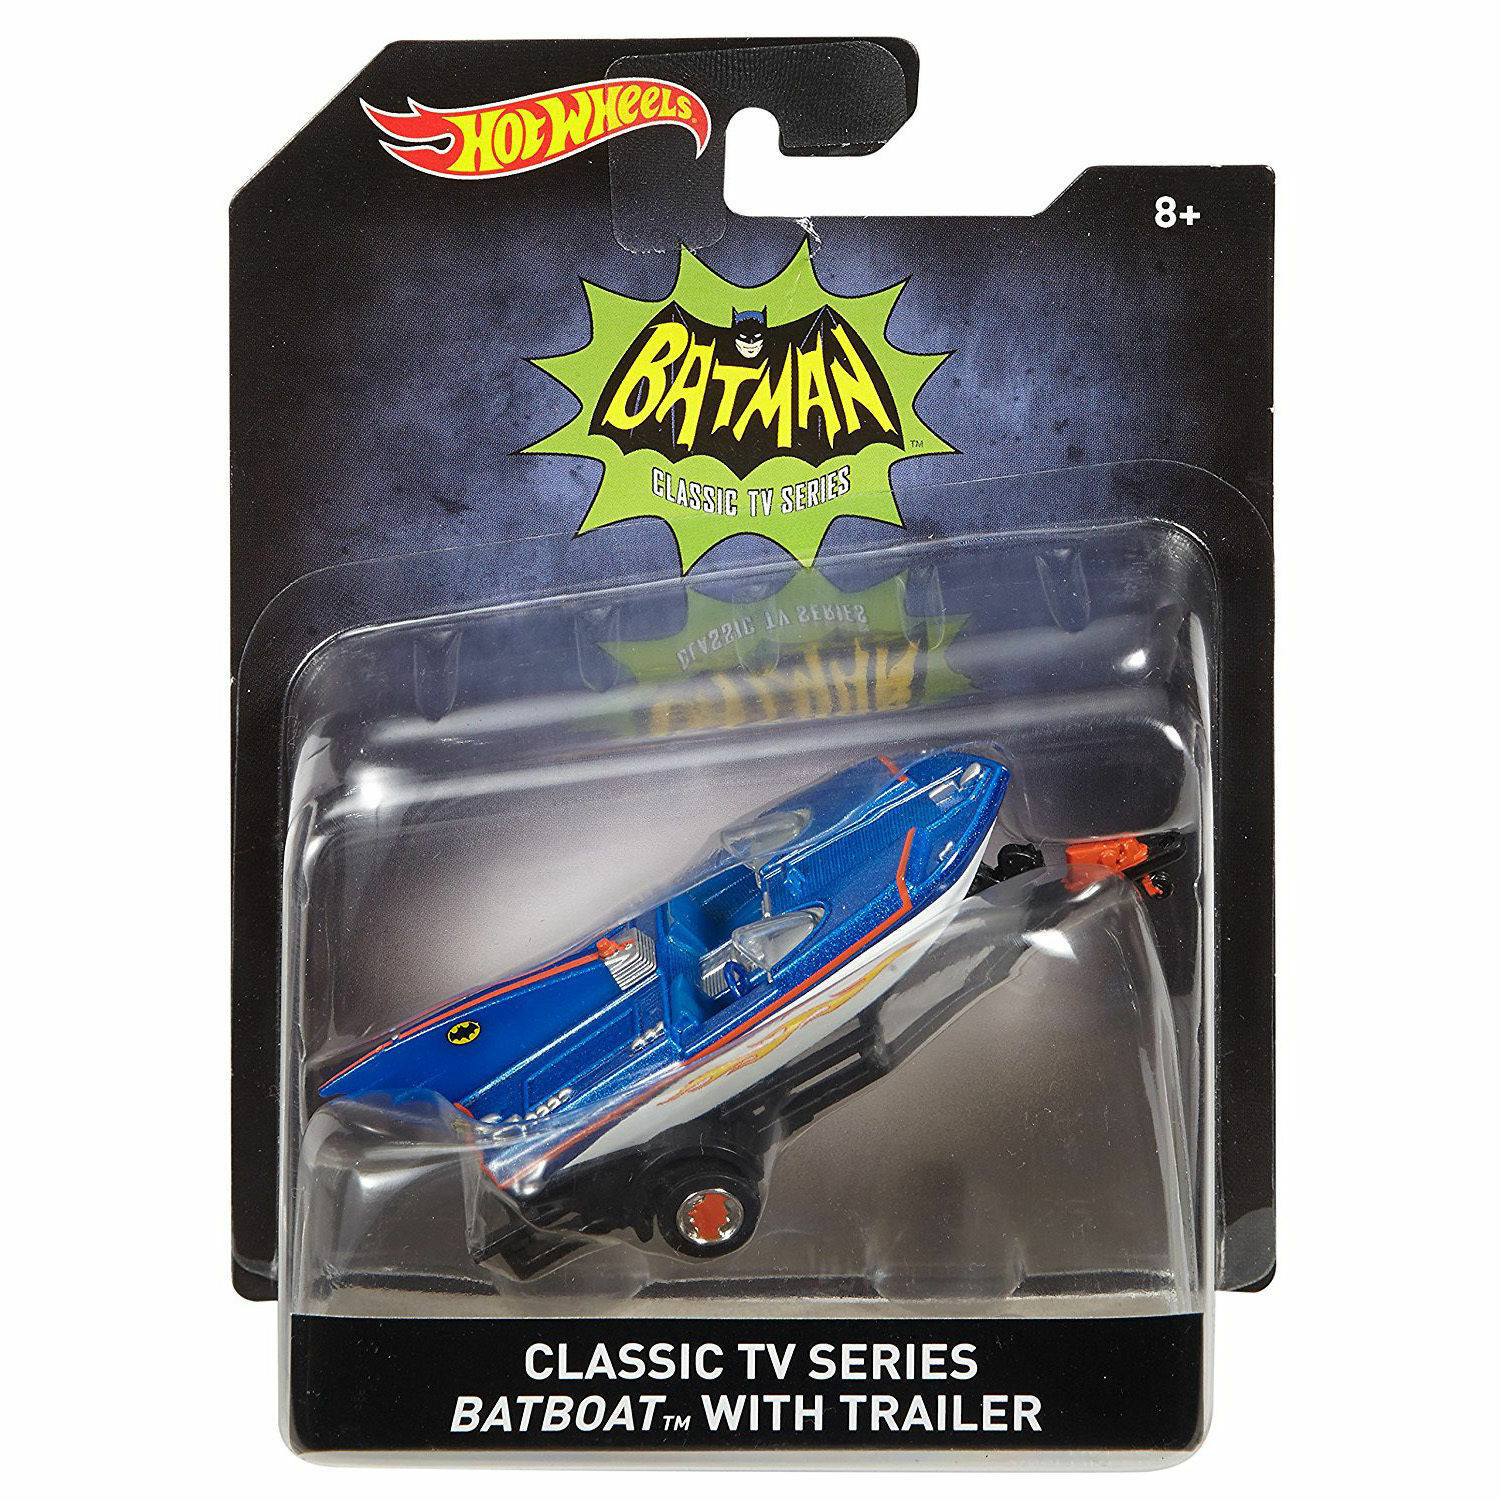 HOTWHEELS BATMAN 1 50 SCALE BATBOAT 2015